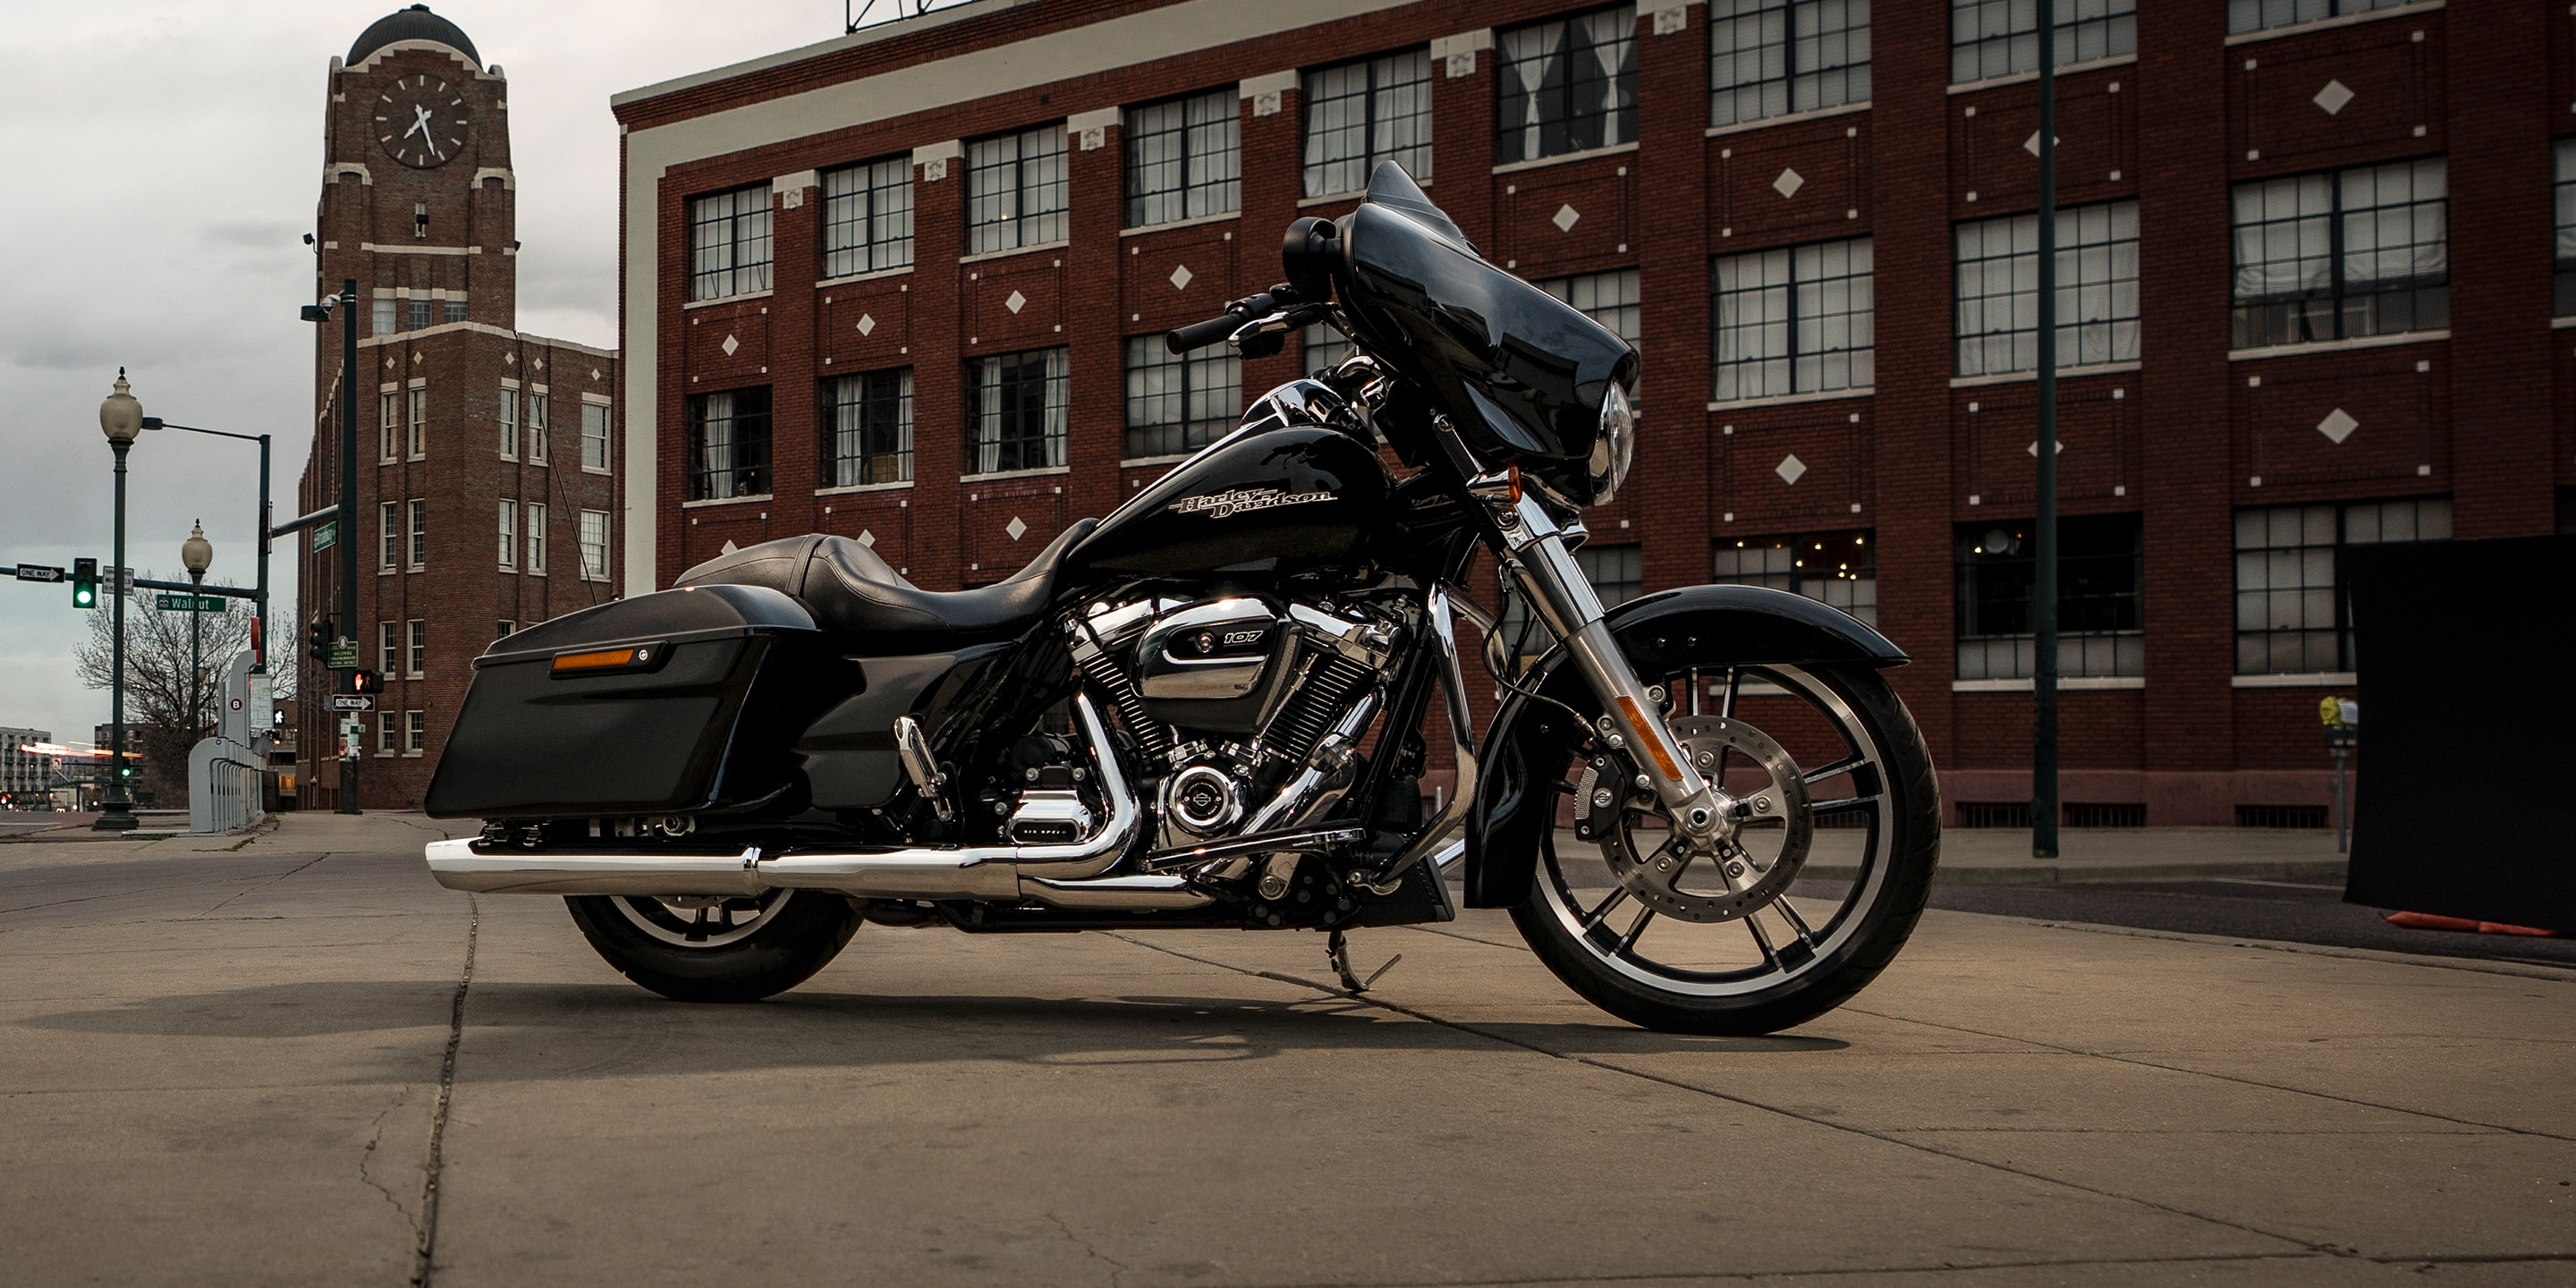 2019 Street Glide motorcycle parked by building